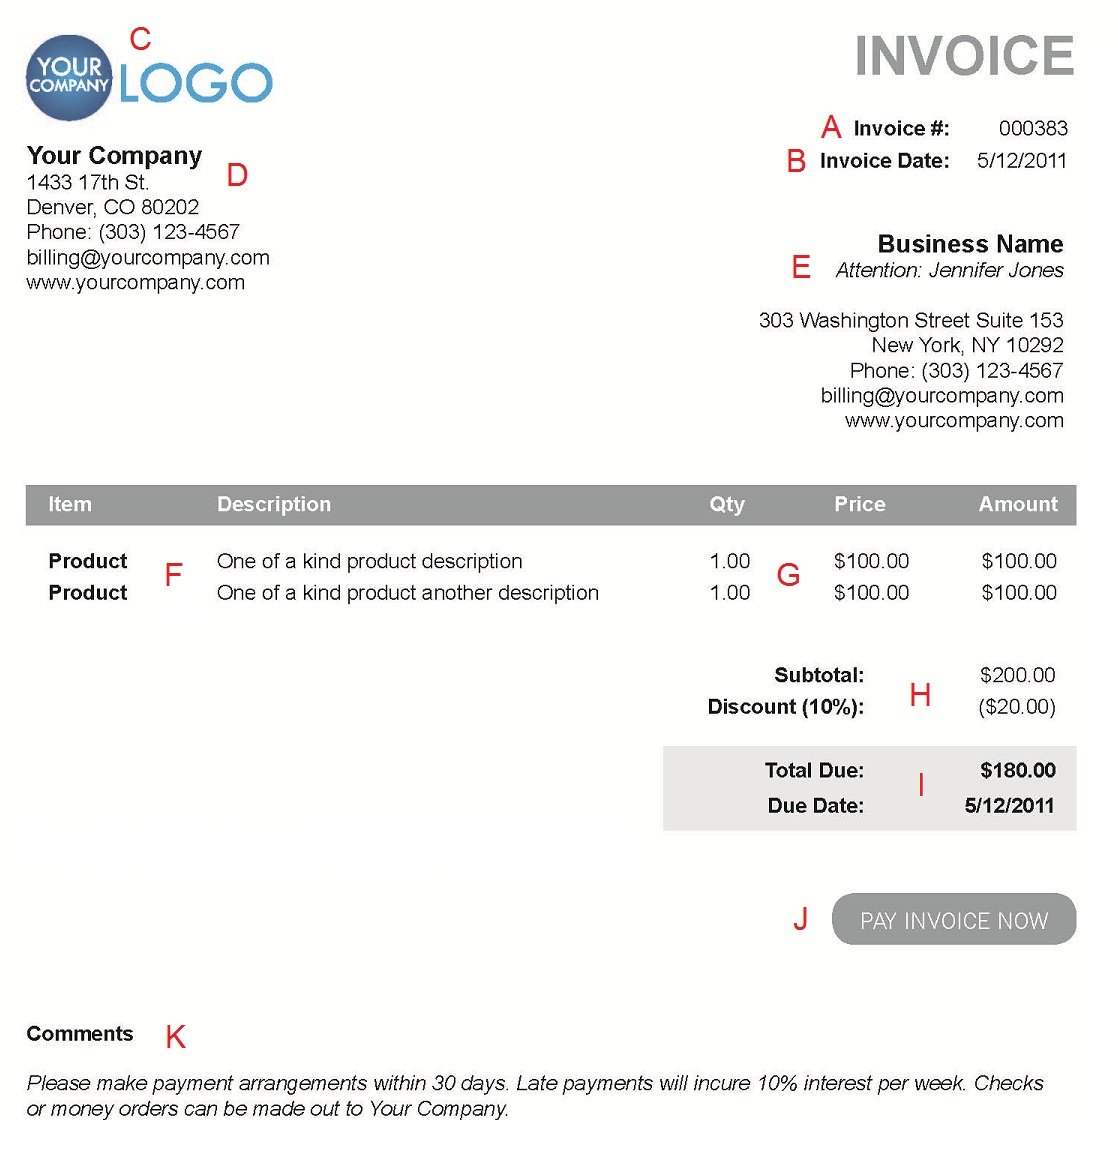 Barneybonesus  Fascinating The  Different Sections Of An Electronic Payment Invoice With Heavenly A  With Captivating Invoice Form Pdf Also Invoice Download In Addition Hvac Invoice And How To Create A Paypal Invoice As Well As Payment Invoice Additionally Net  Invoice From Paysimplecom With Barneybonesus  Heavenly The  Different Sections Of An Electronic Payment Invoice With Captivating A  And Fascinating Invoice Form Pdf Also Invoice Download In Addition Hvac Invoice From Paysimplecom